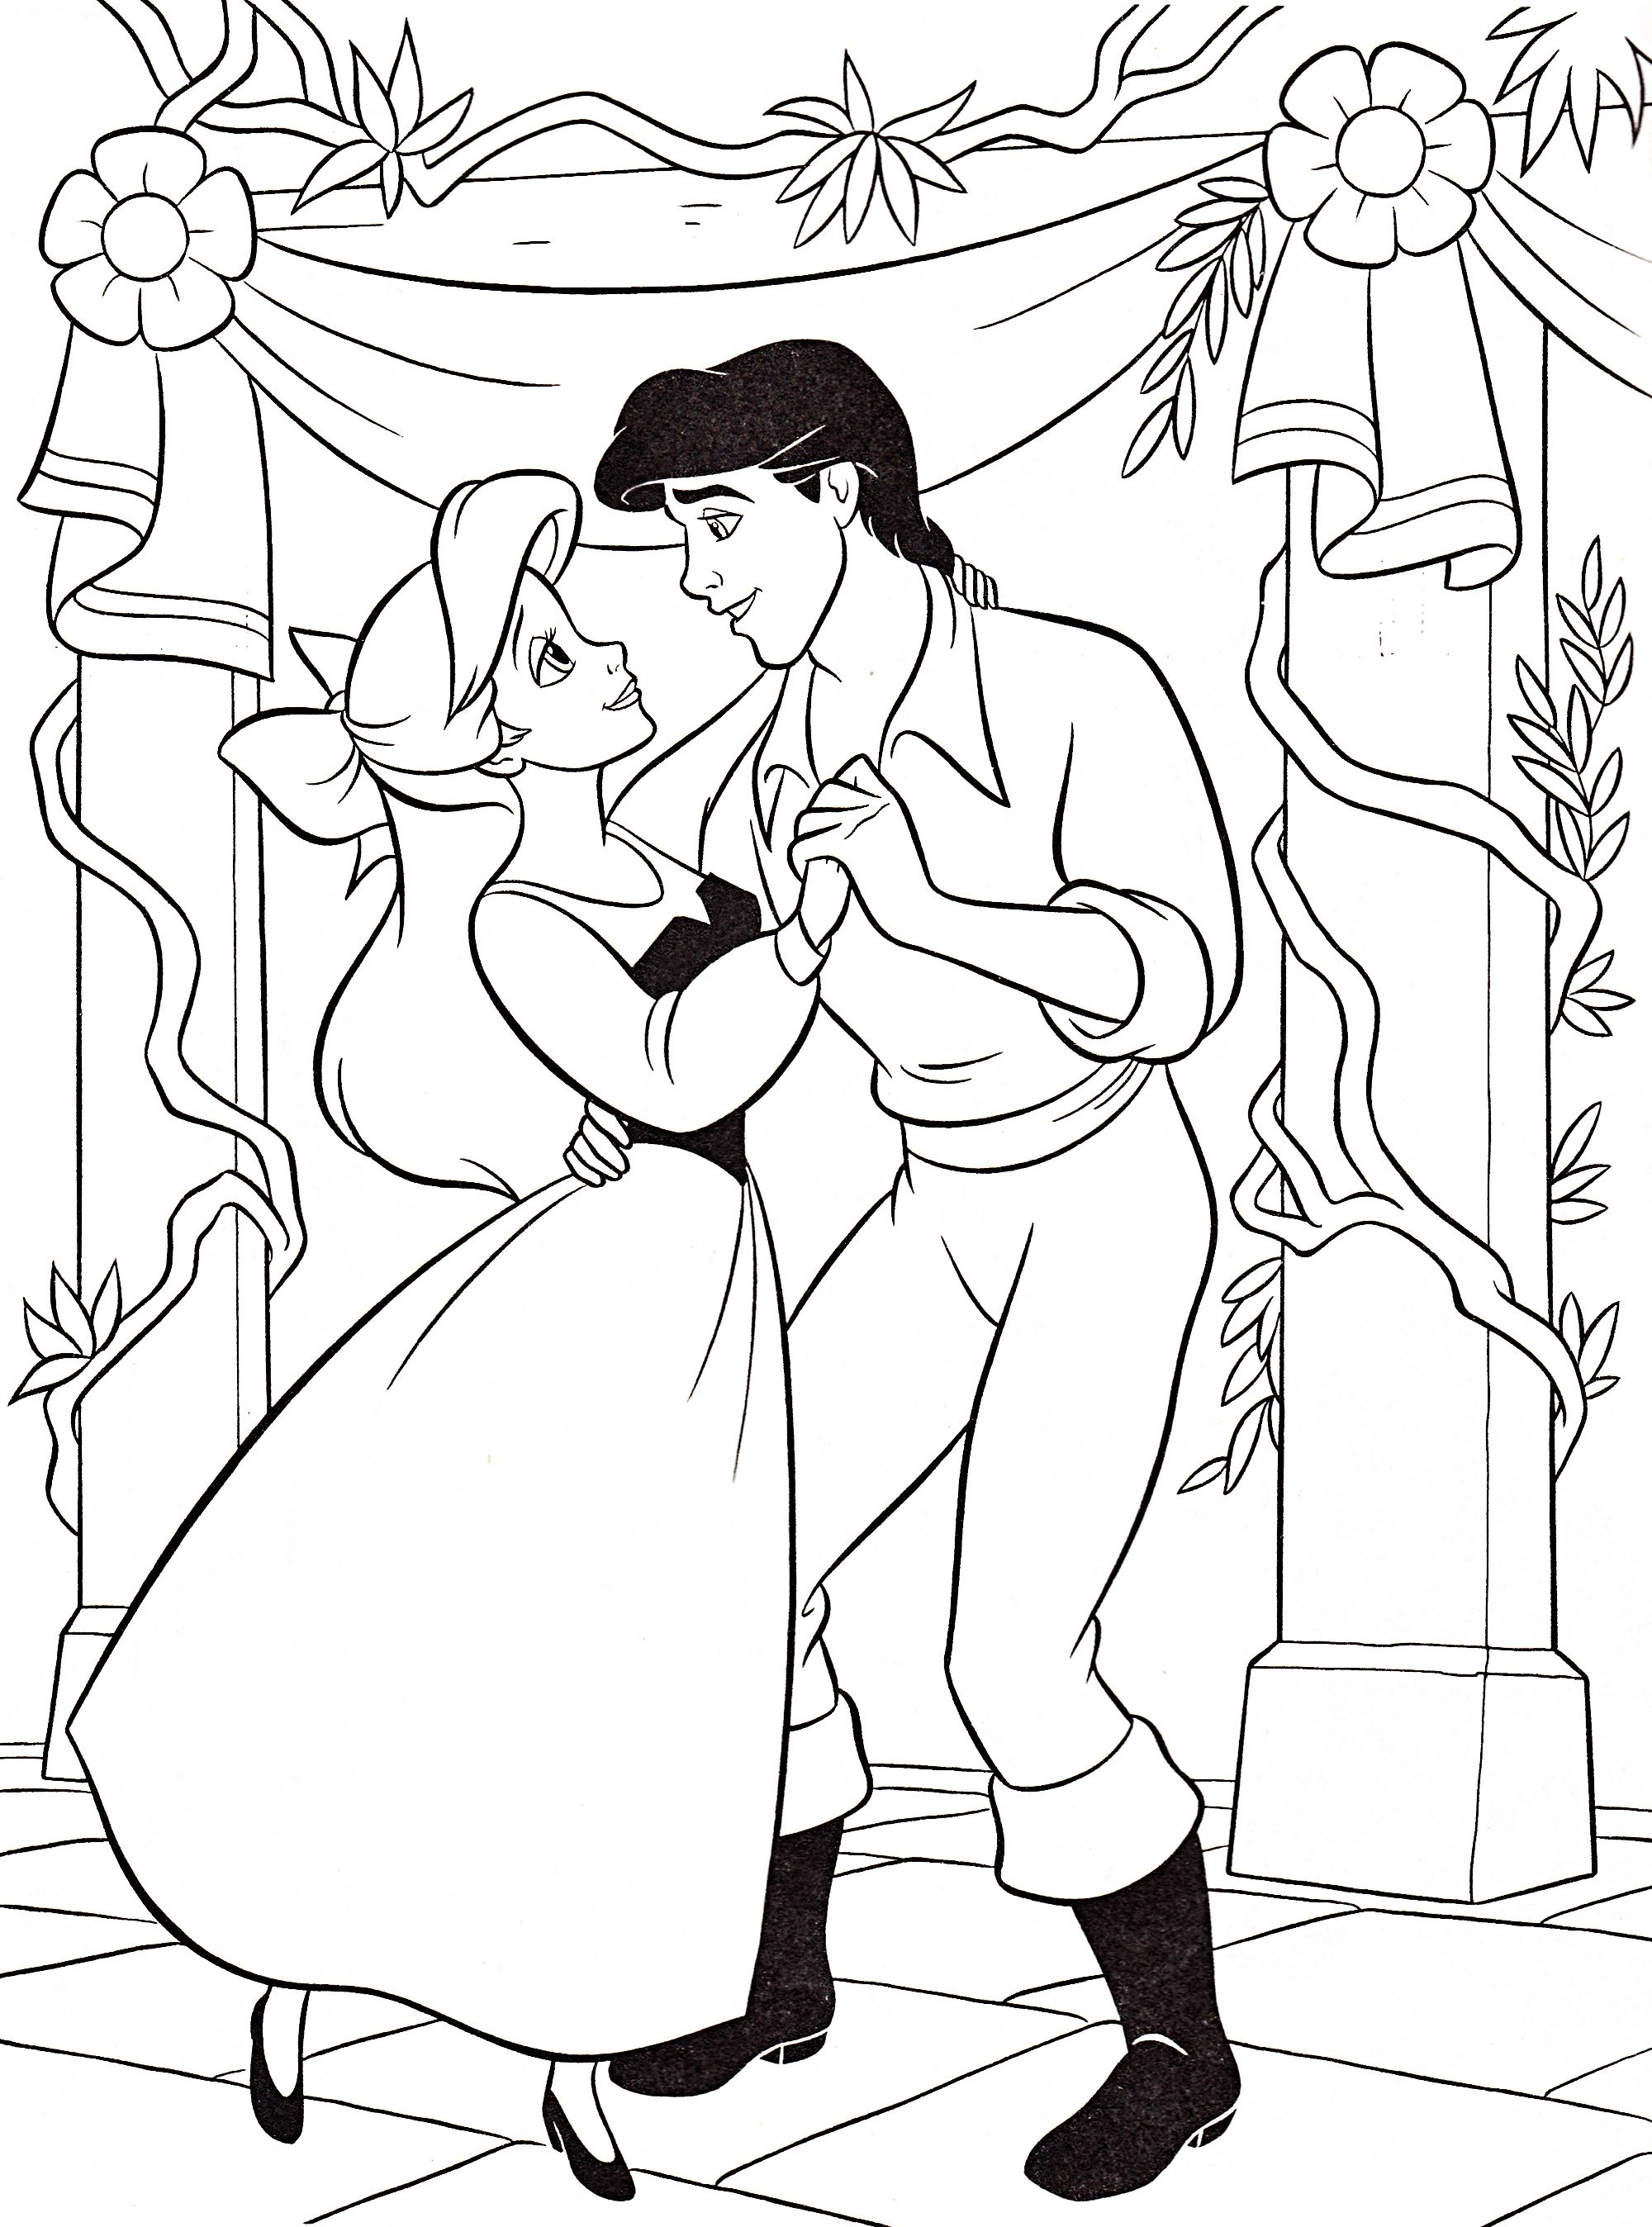 Walt Disney Characters Coloring Pages Princess Ariel